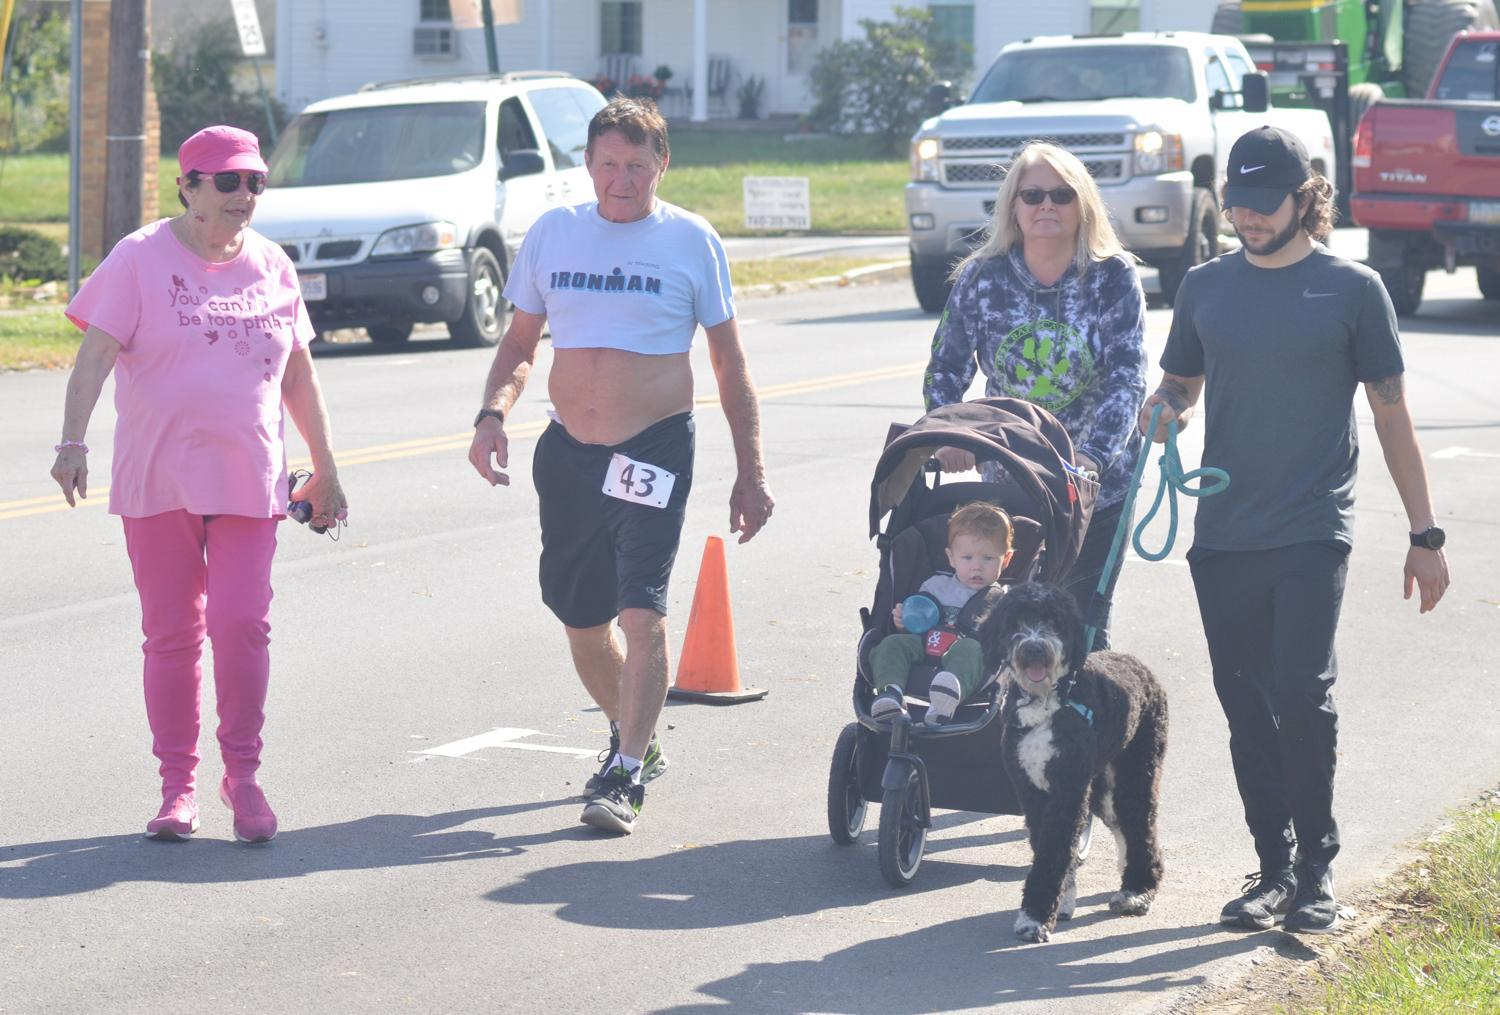 Mitch Toto, second from left, one of the founders of the annual Children's Hospital Charity Run, does a lap of Charlie's Run with four generations of his family. Pictured are, from left to right: Nancy Toto, Mitch Toto, their daughter Christine Nichol